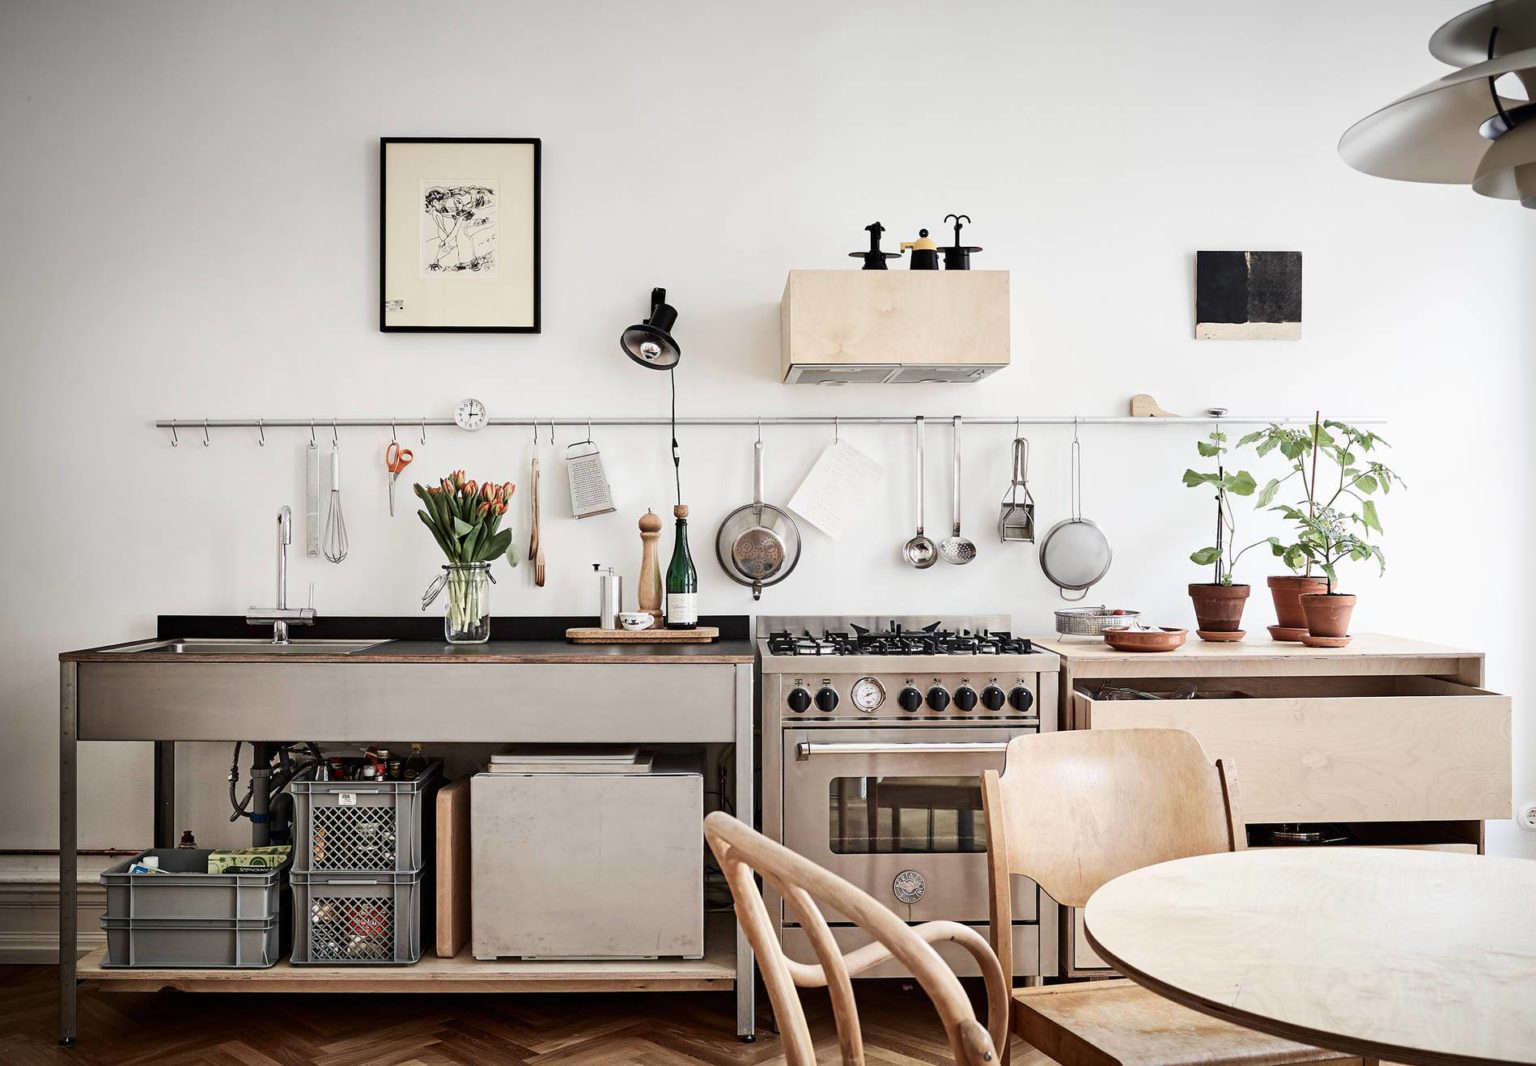 Steal This Look: Smart Storage in a Swedish Kitchen - The Organized Home